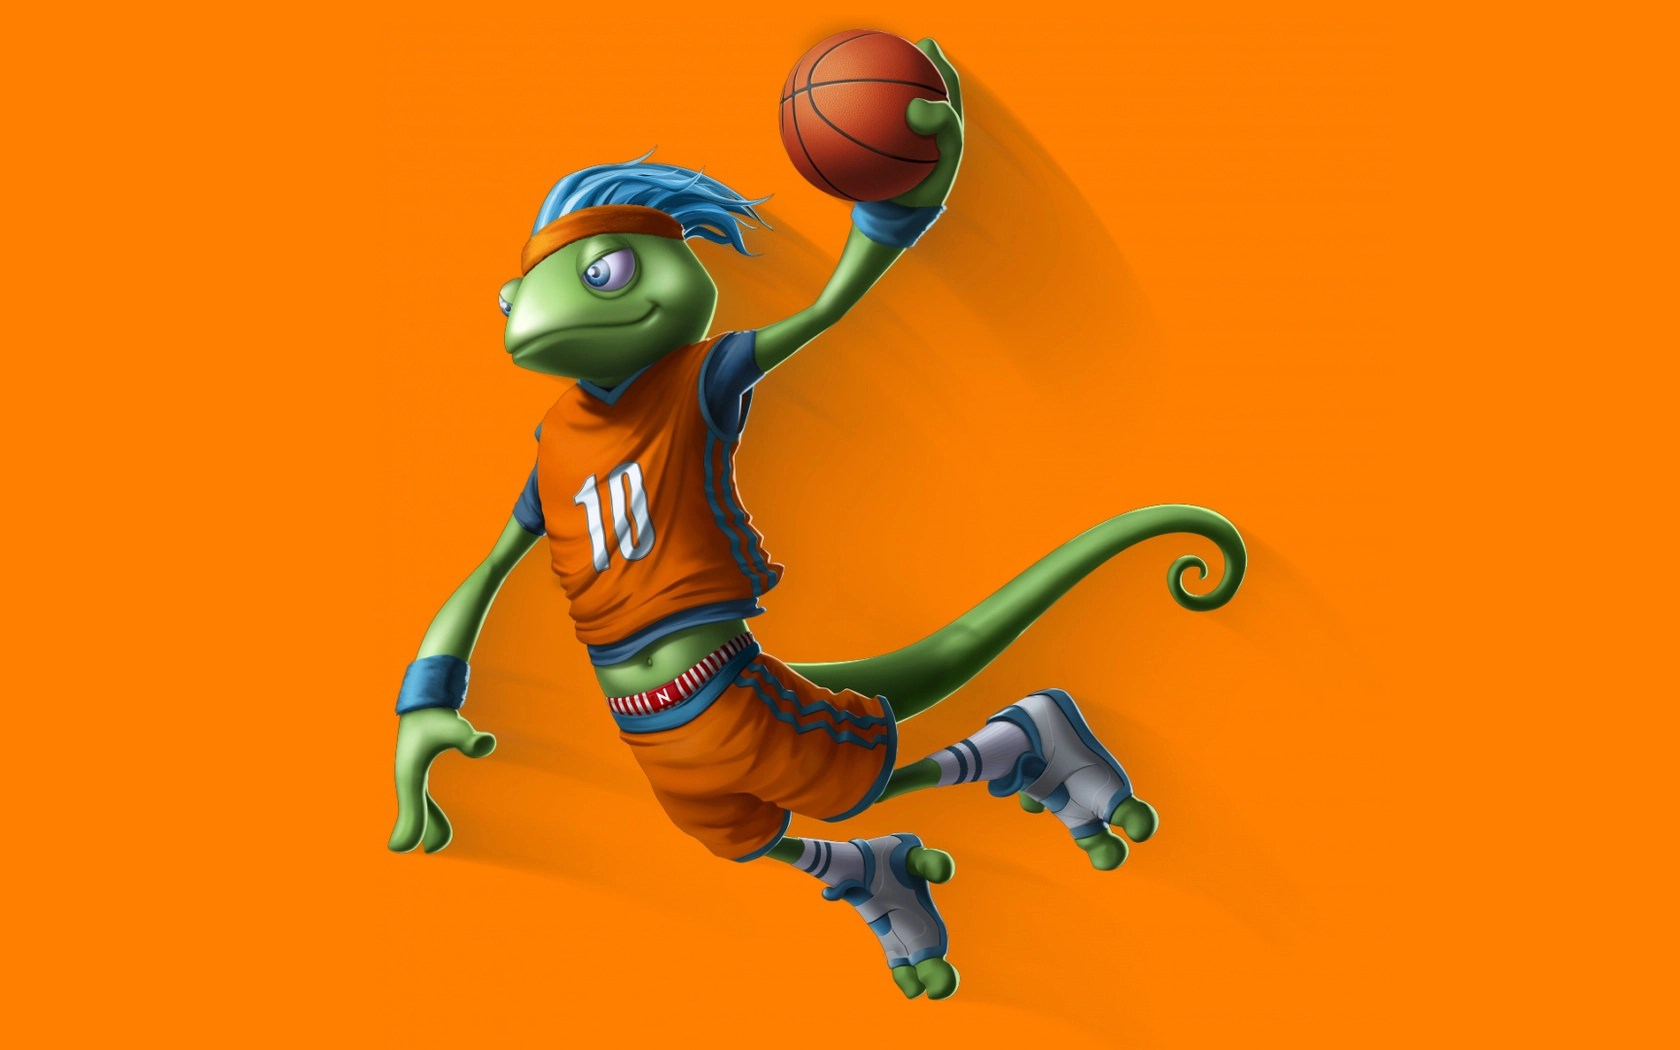 Free Hd 3d Wallpapers For Desktop 25 Basketball Wallpapers Backgrounds Images Pictures